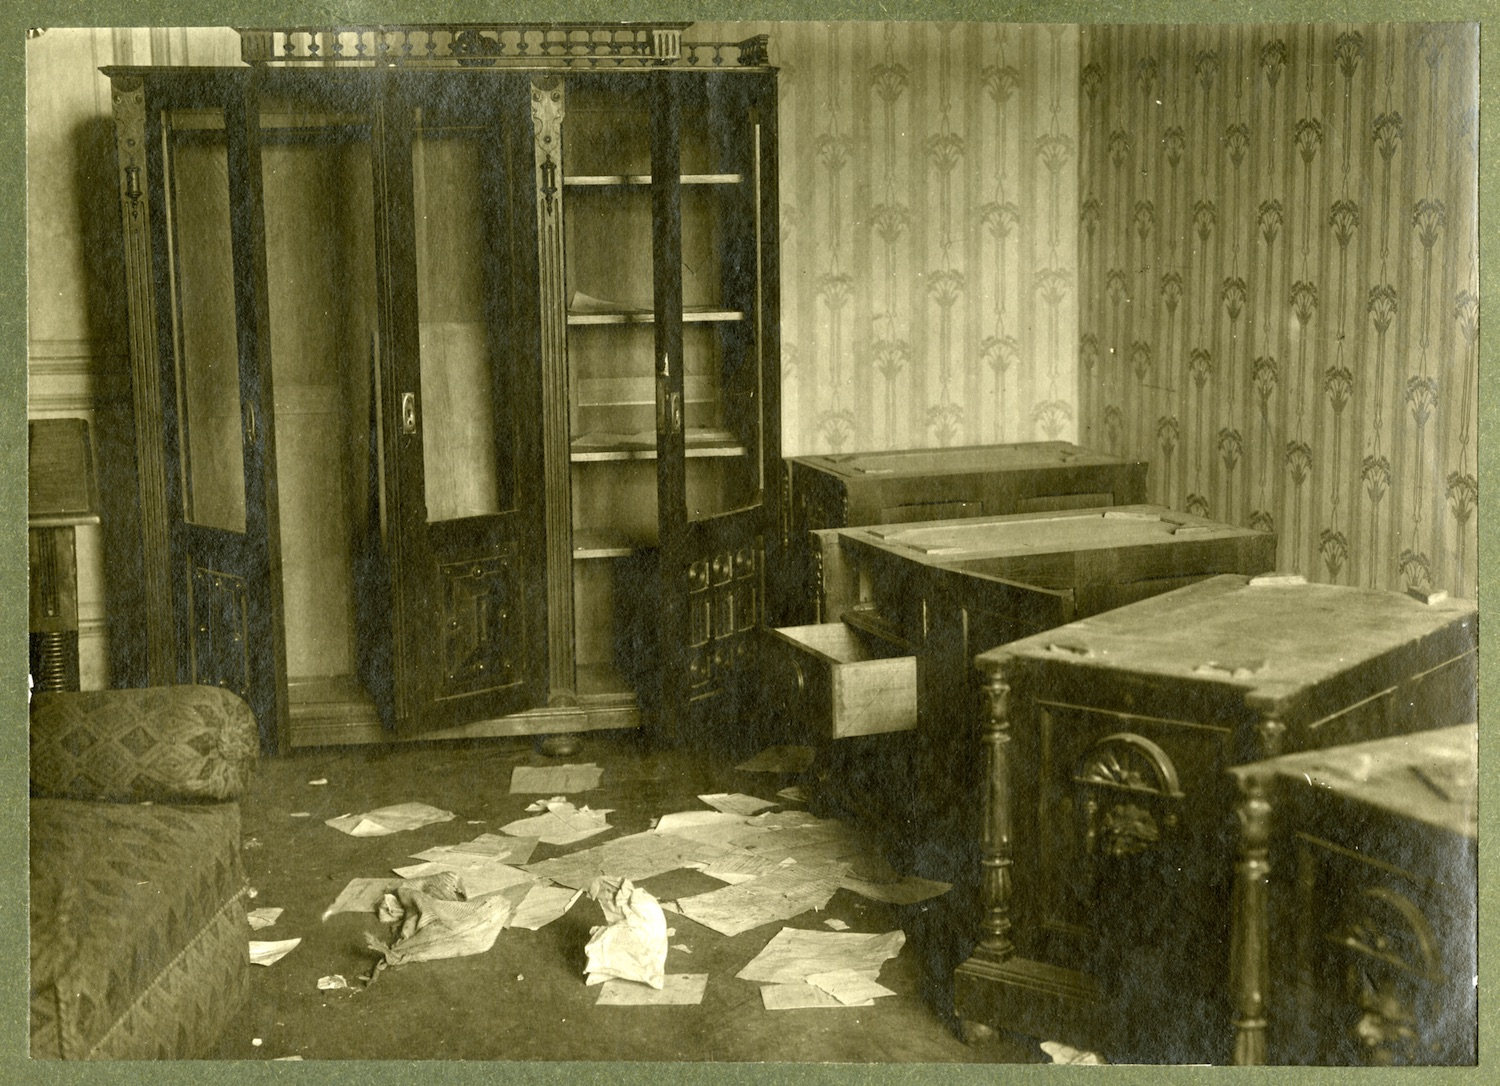 Fig. 3: The interior of the offices of the Central Committee for Aid to Jewish Pogrom Victims after being vandalized by members of the Volunteer Army, October or November 1919, Kiev. YIVO Institute for Jewish Research RG 80-89 f. 54591